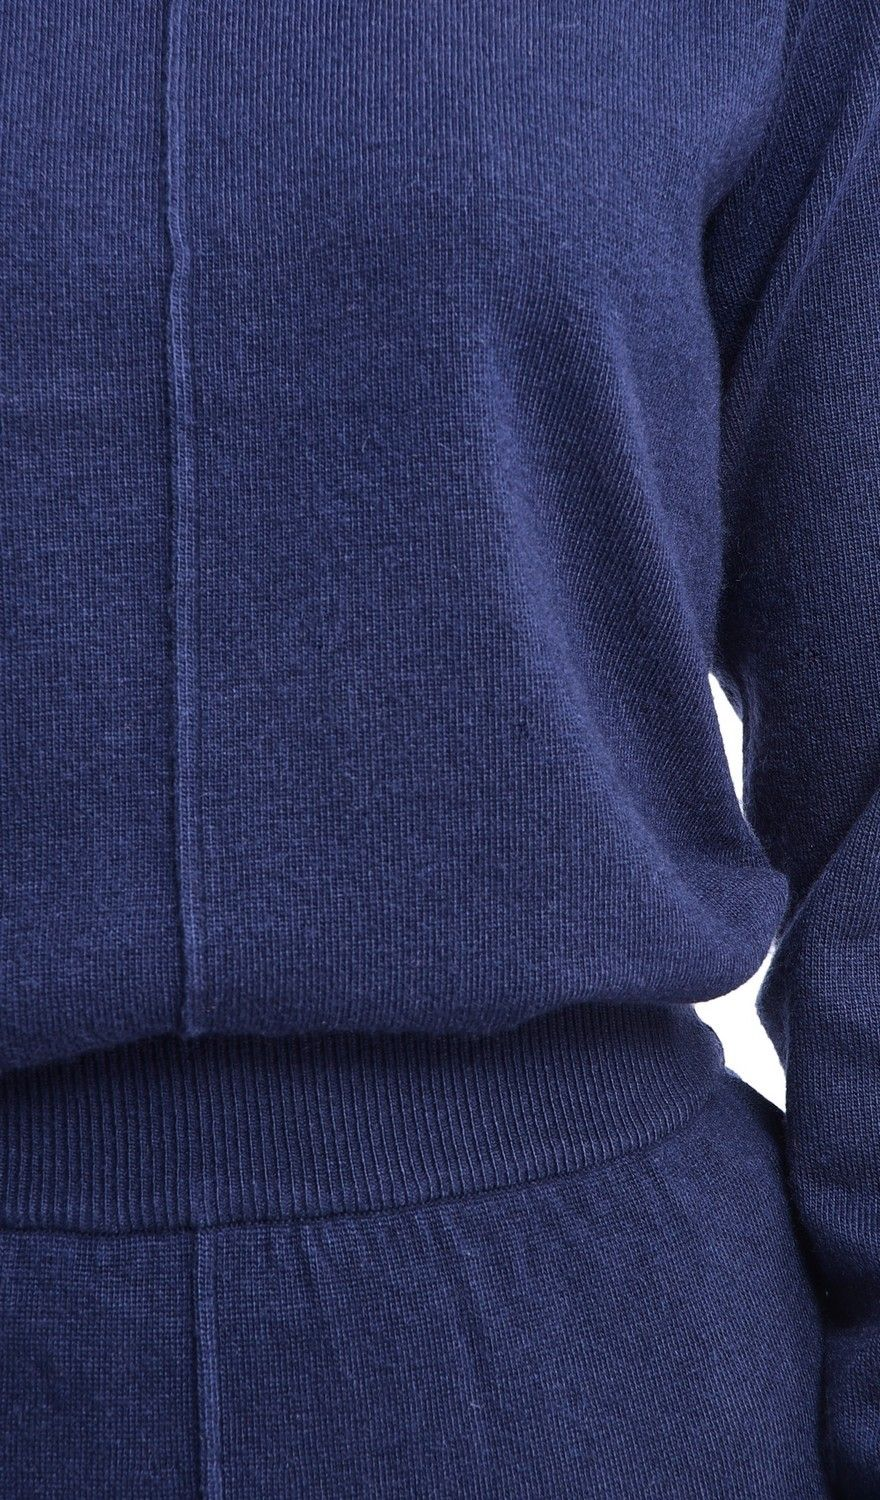 Assuili Round Neck Ribbed Sweater in Navy